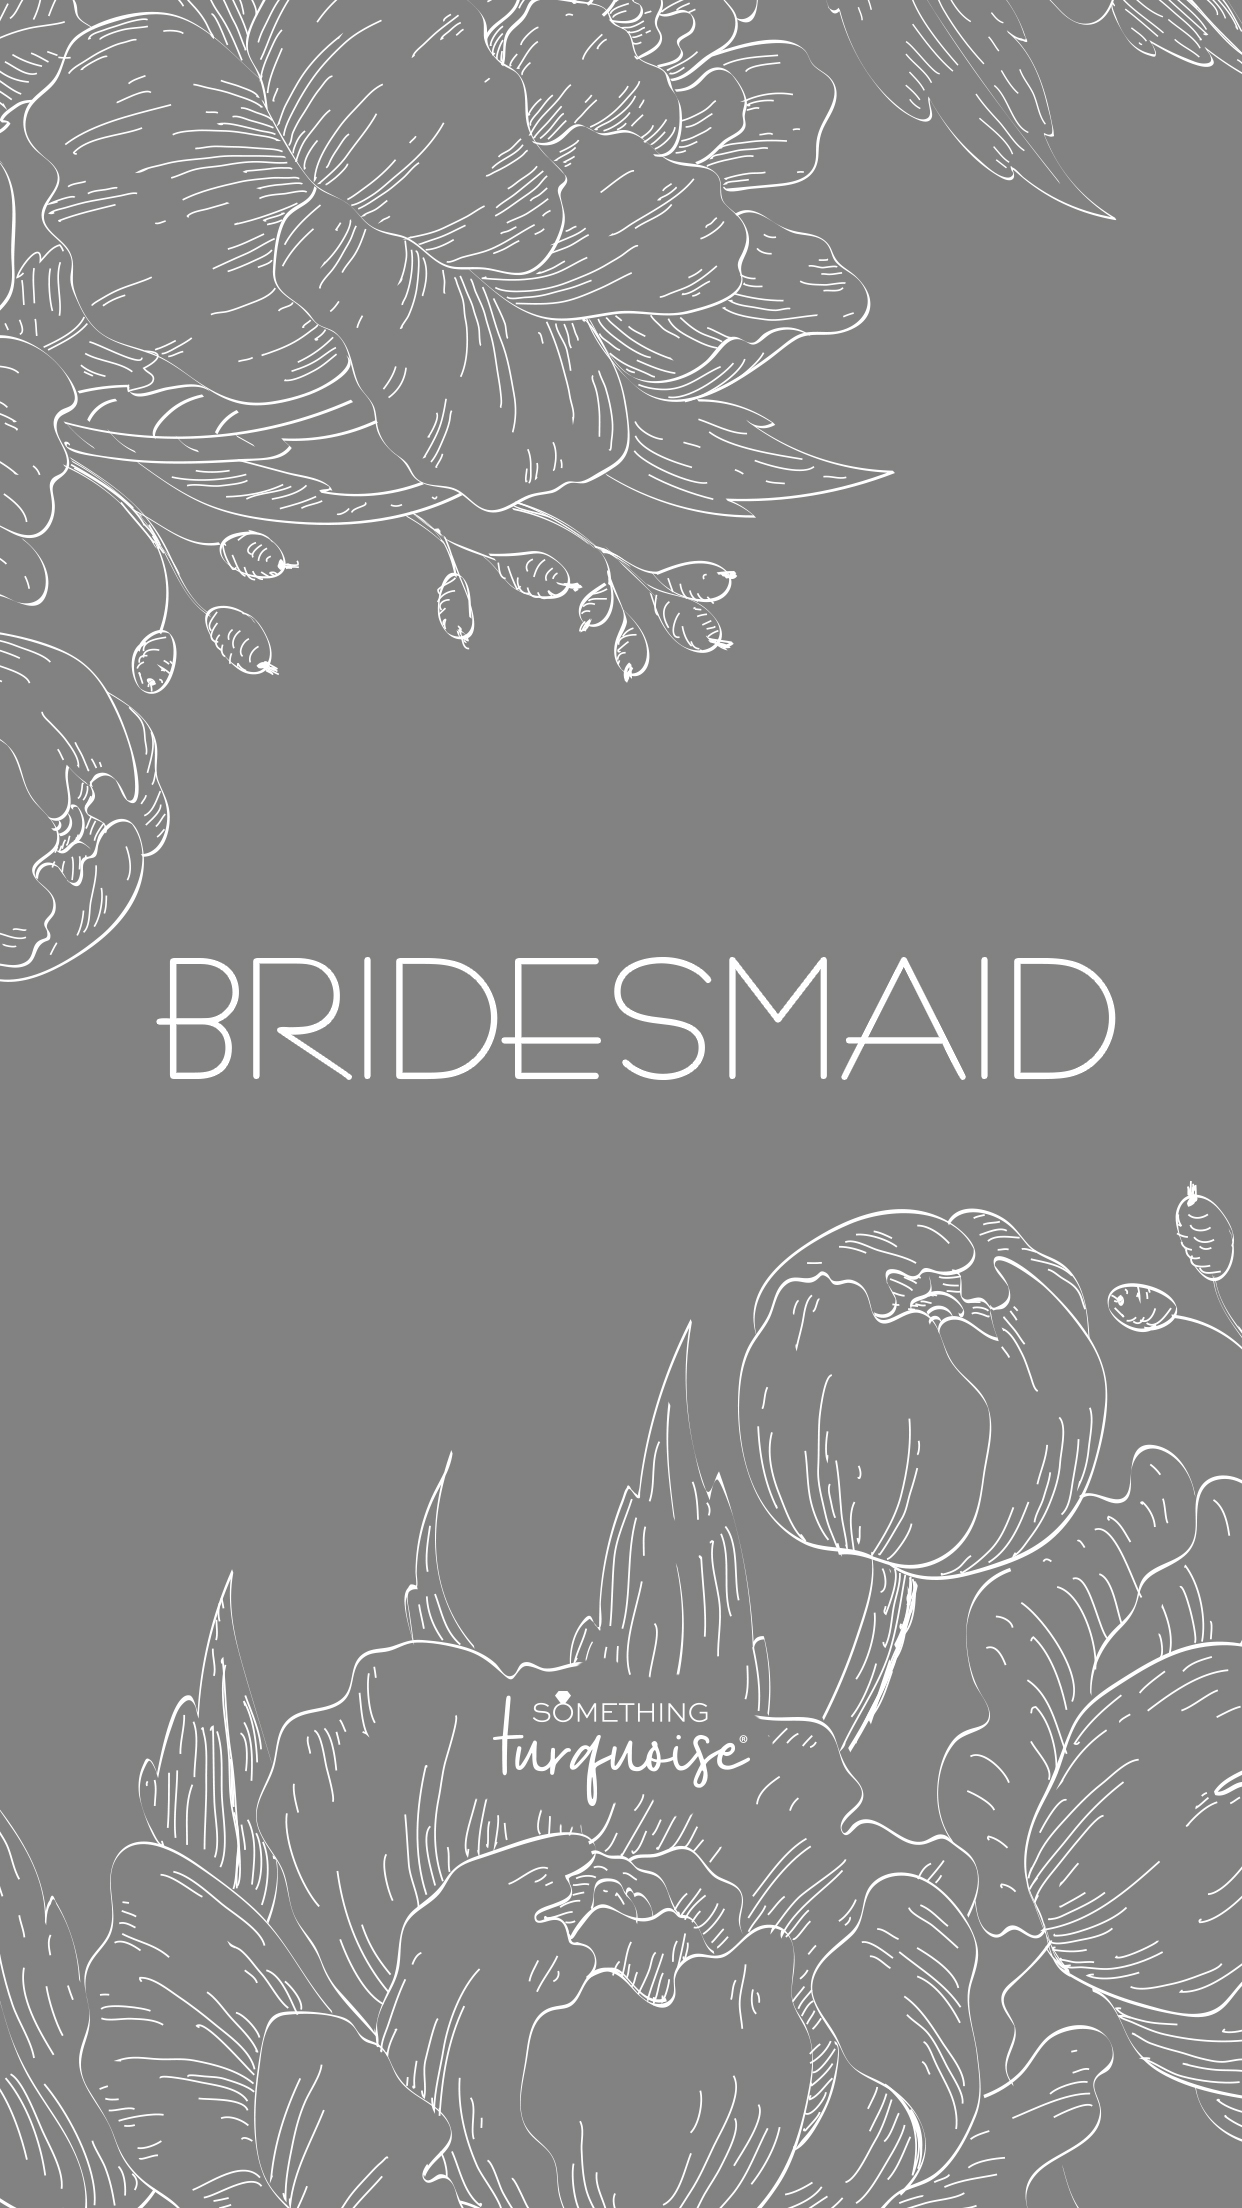 Free floral phone wallpaper for the Bridesmaids!